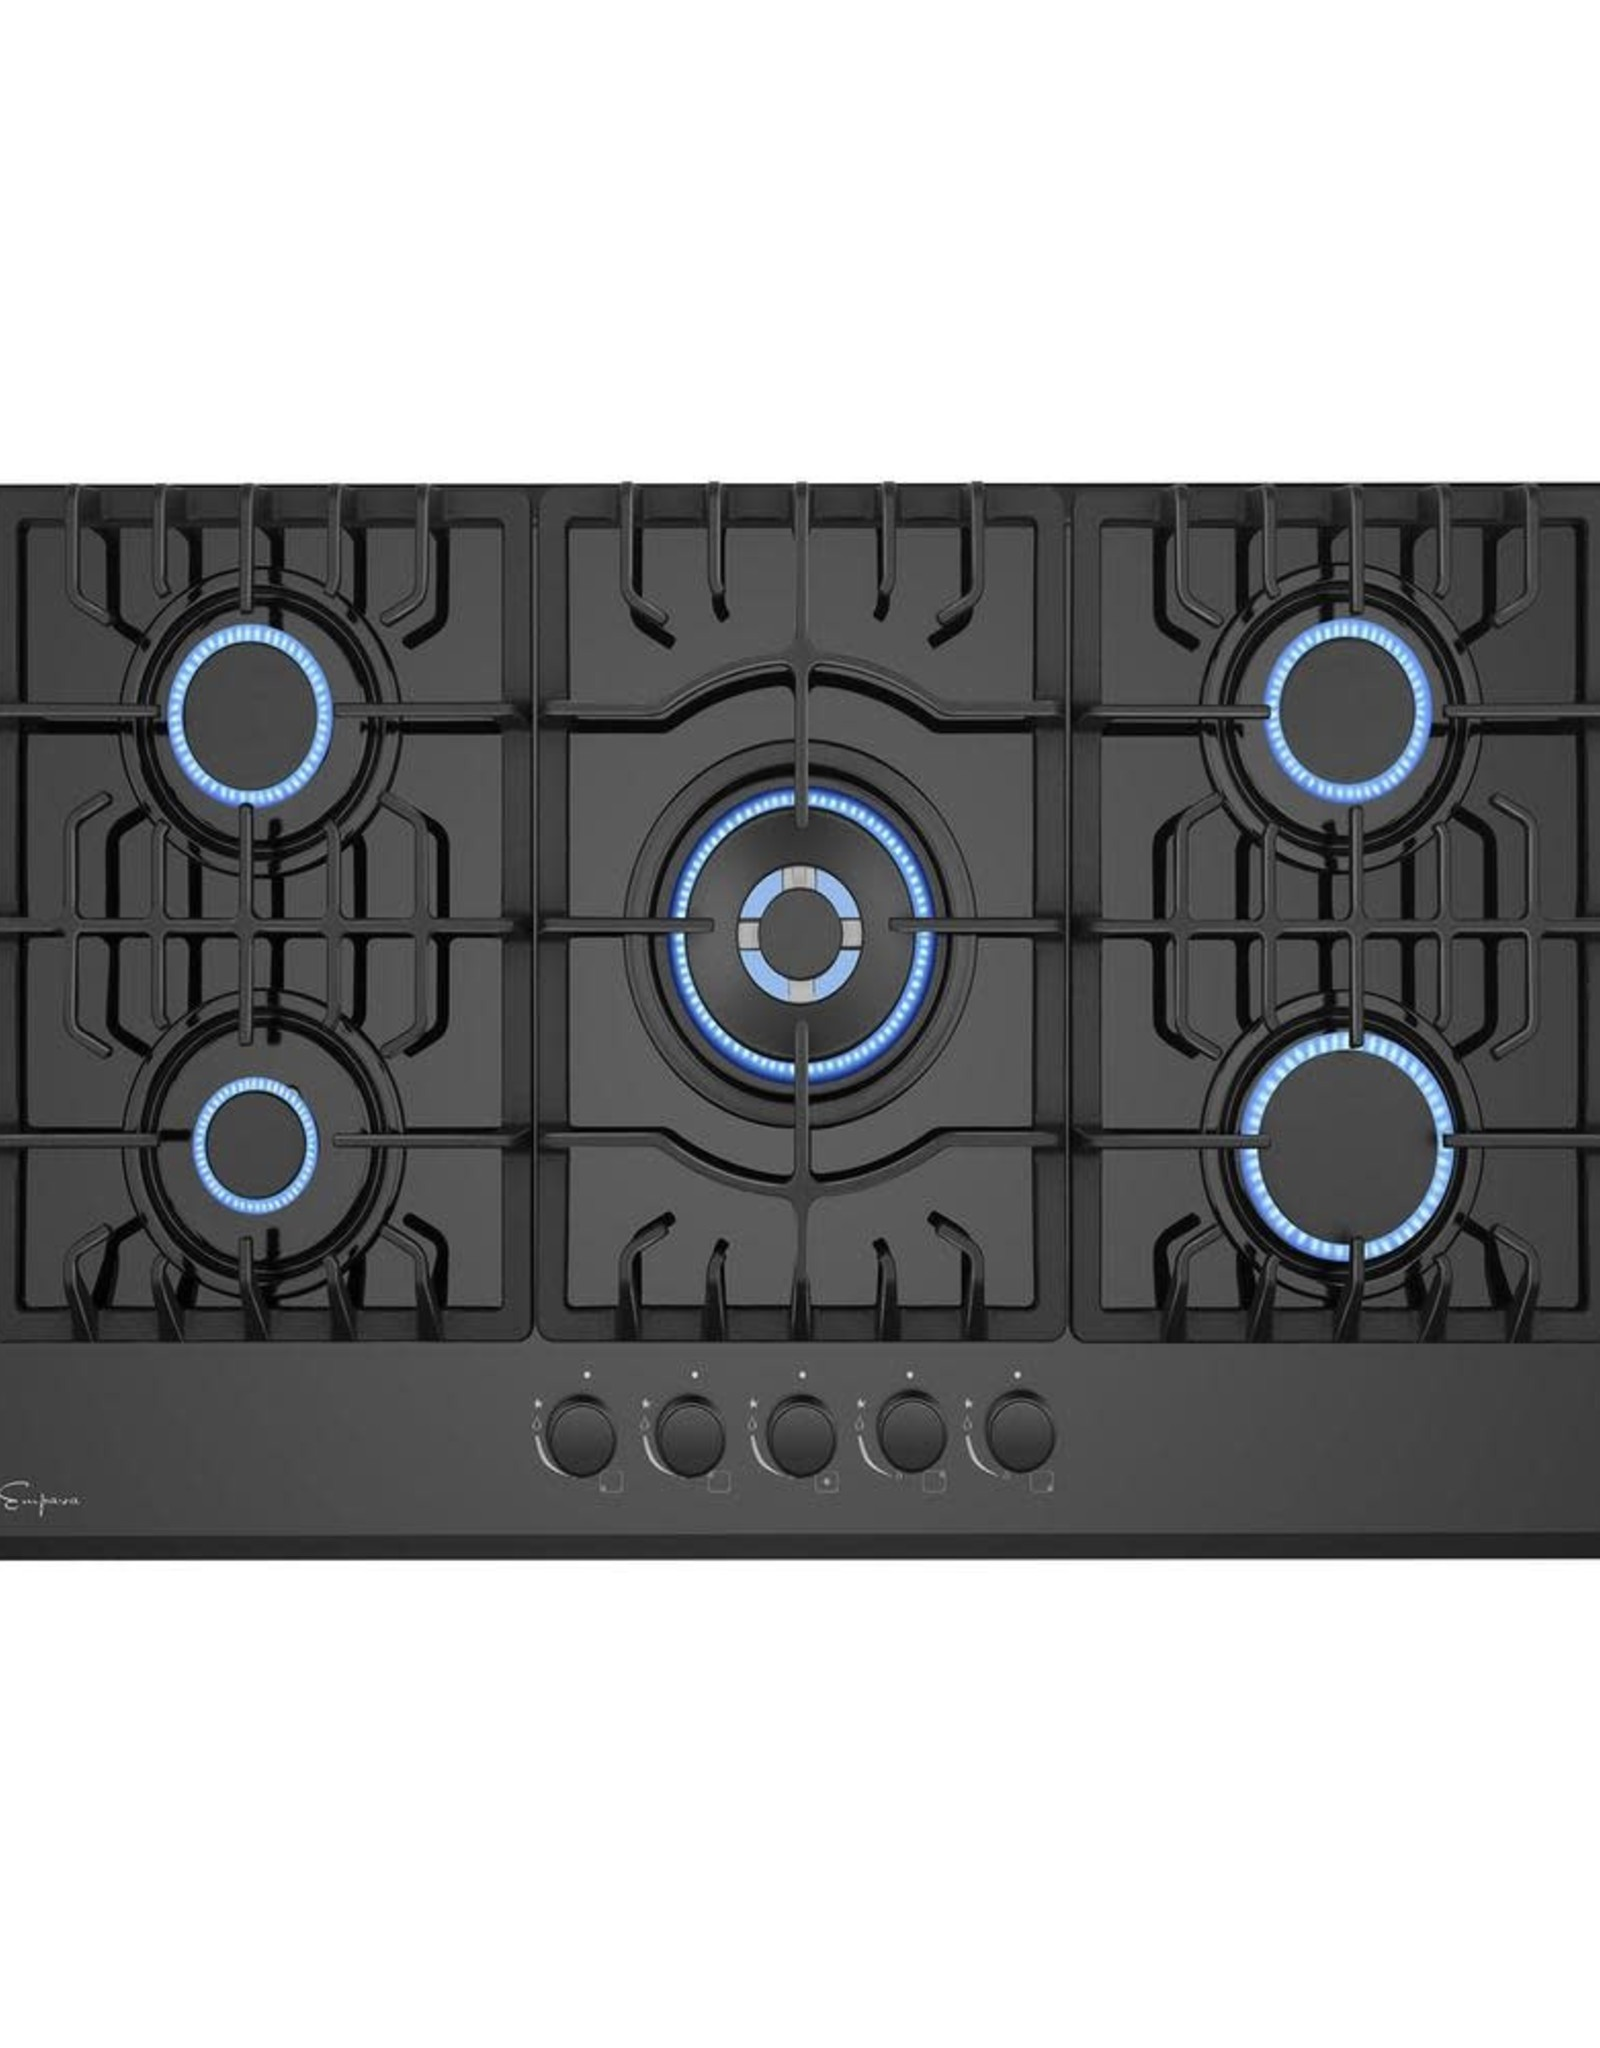 Empava 30 in. Gas Stove Cooktop with 5 Italy SABAF Burners in Black Tempered Glass